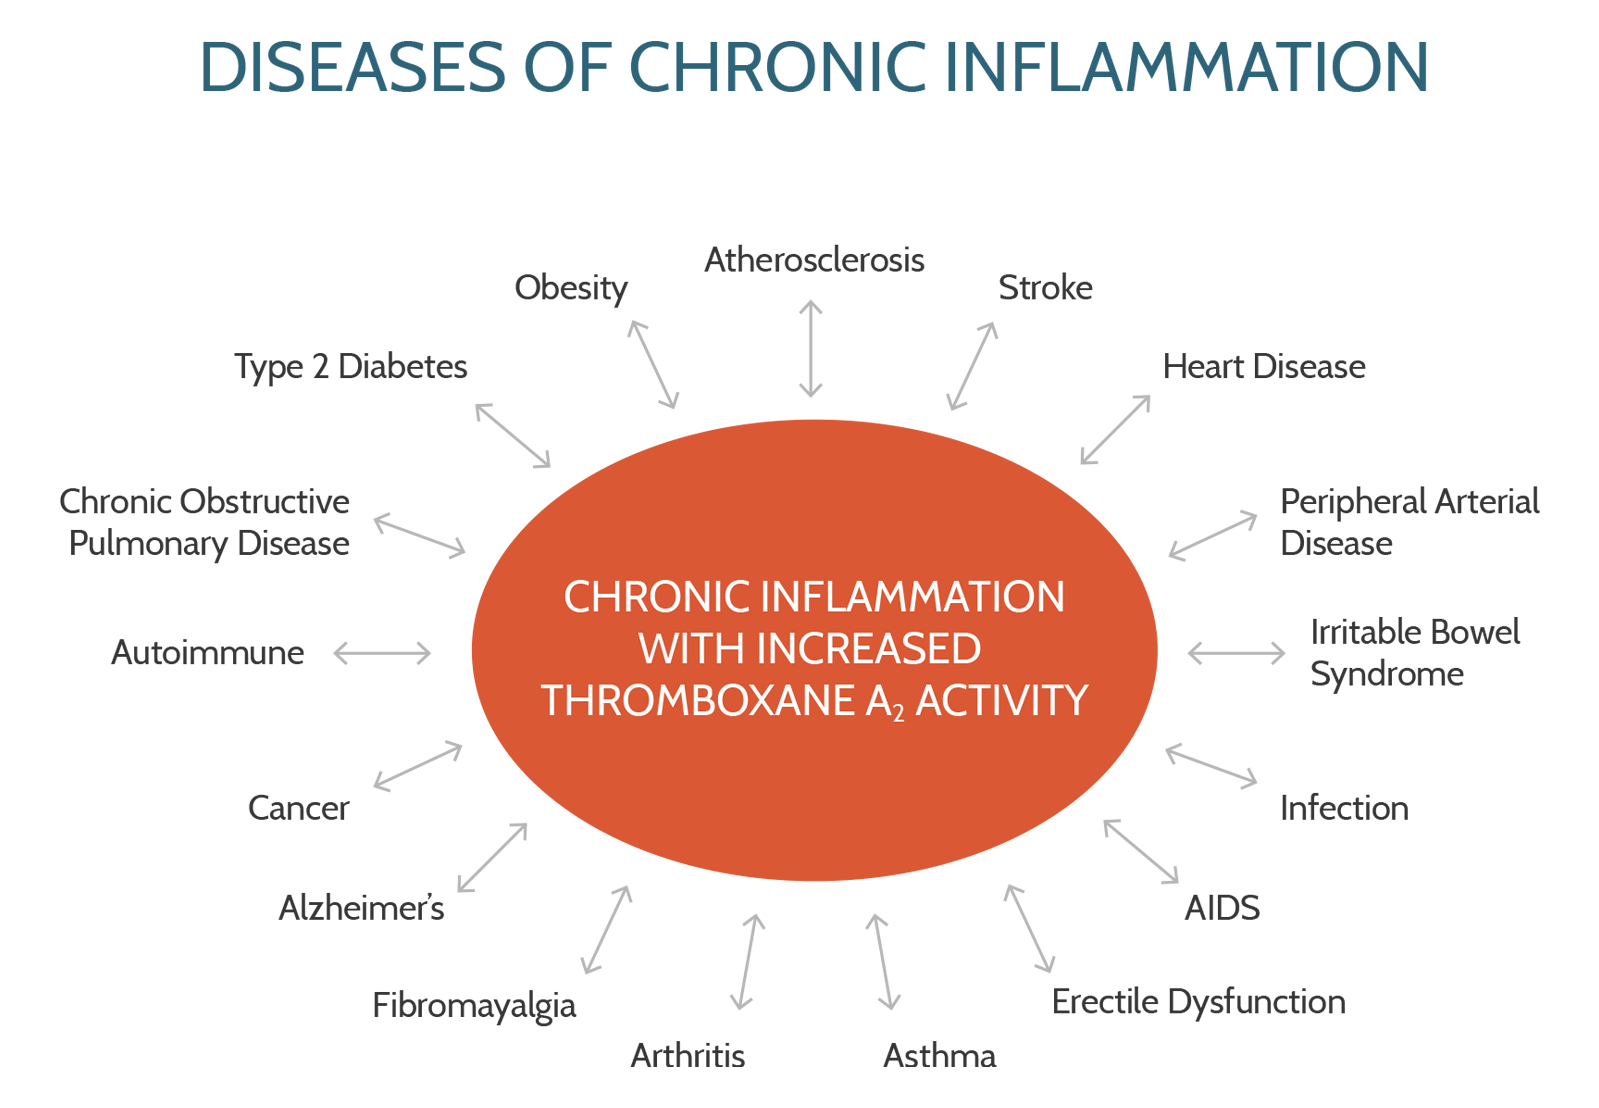 Diseases of Chronic Inflammation